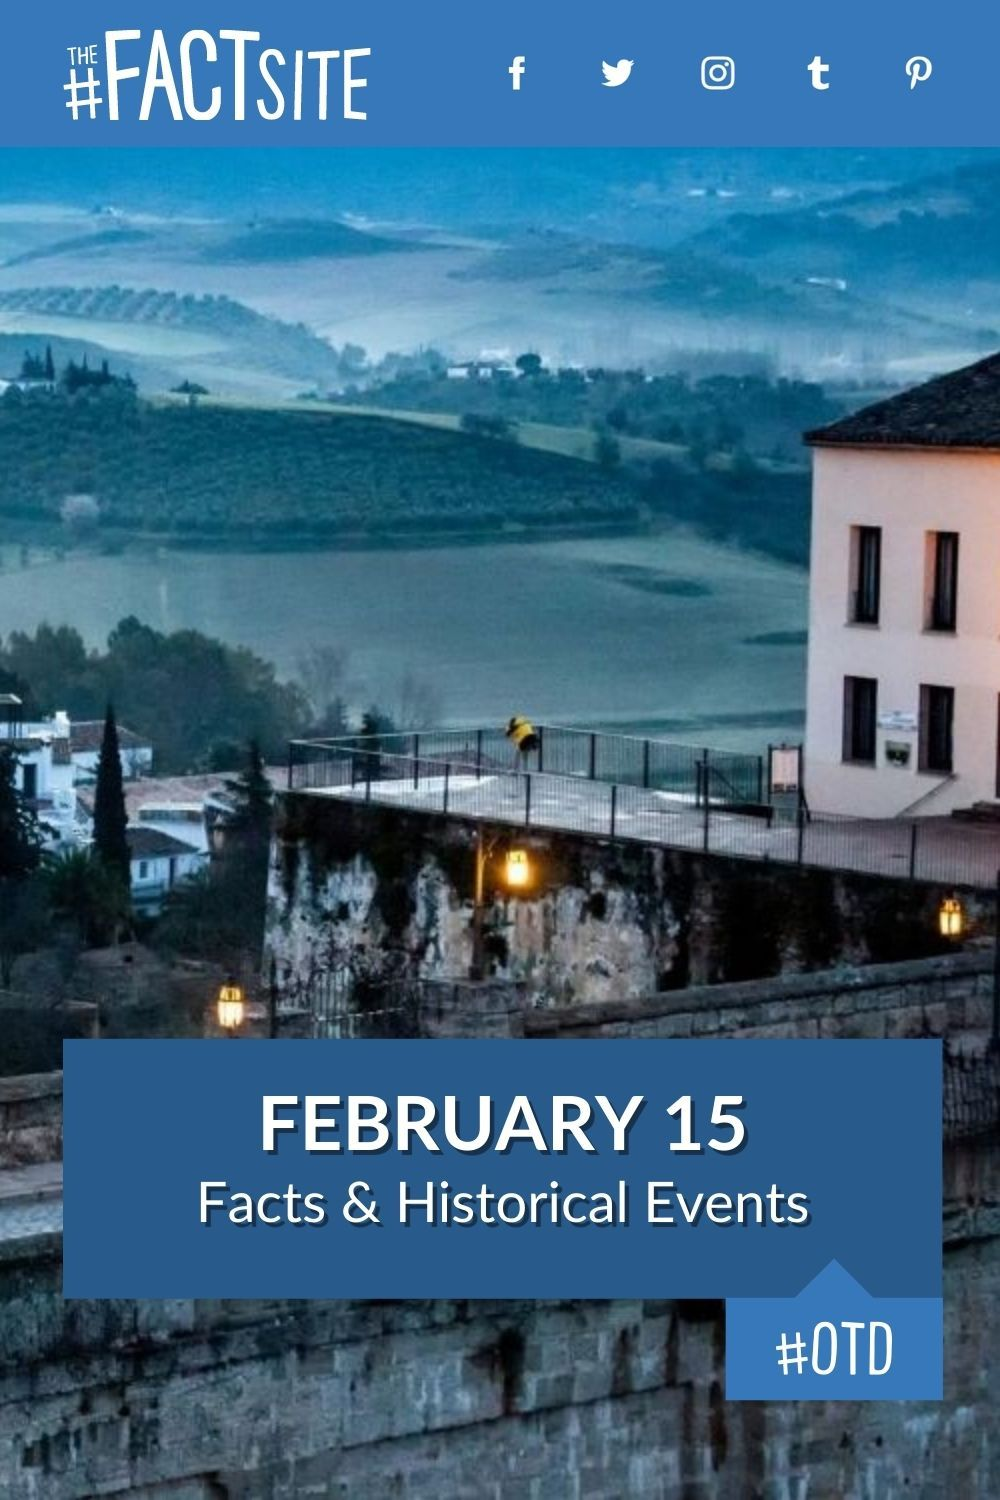 Facts & Historic Events That Happened on February 15